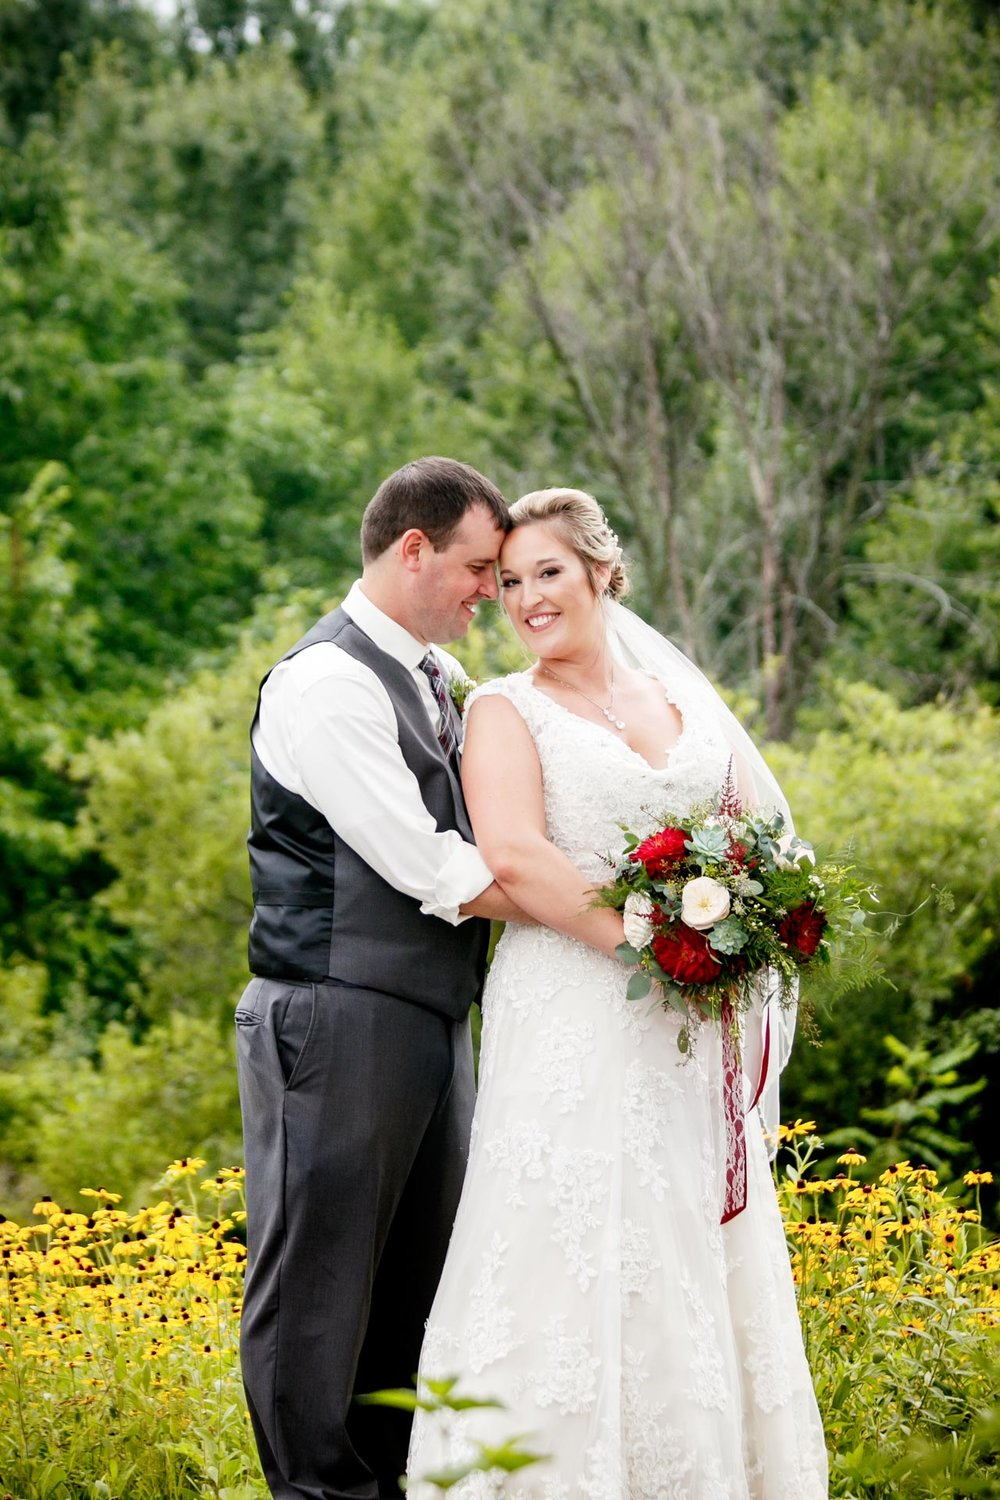 green-bay-botanical-gardens-wedding-adam-shea-photography-green-bay-appleton-neenah-photographer-19.jpg